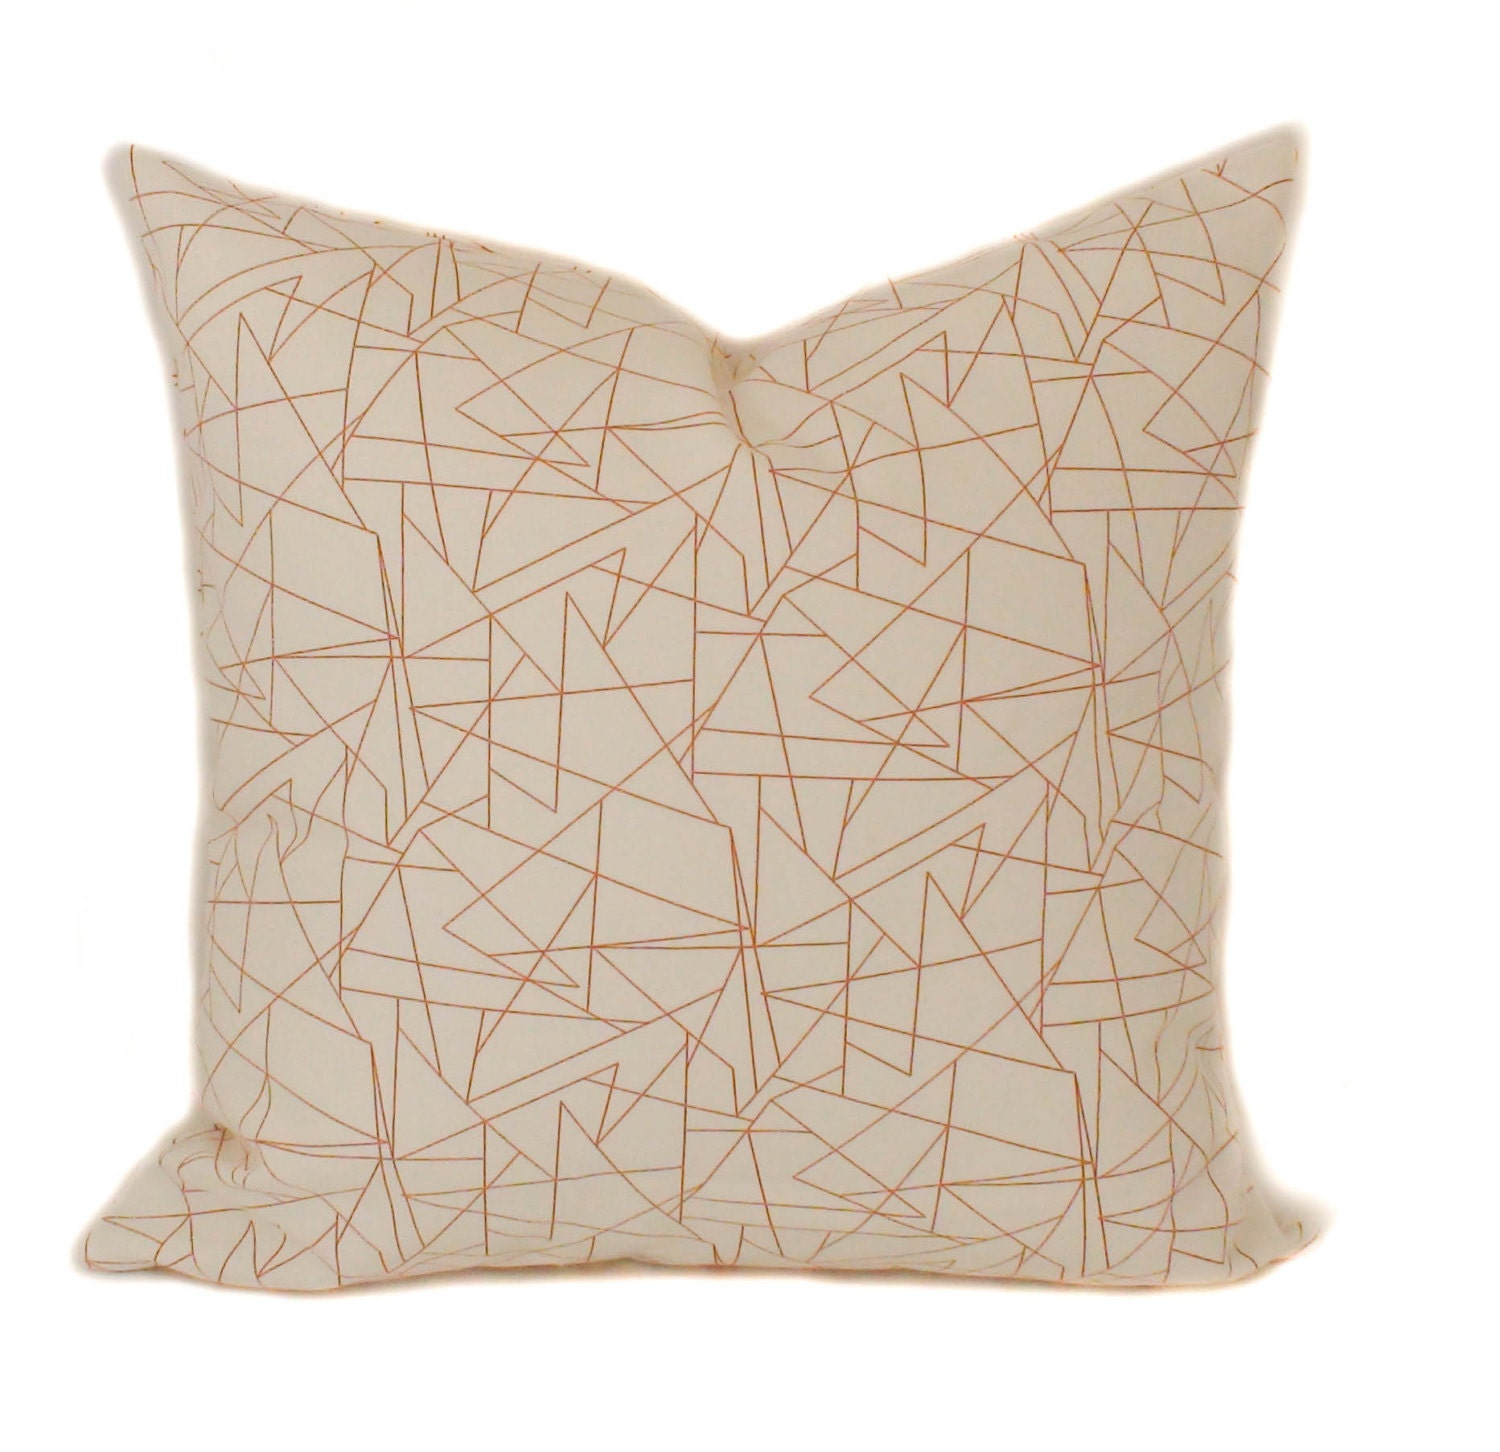 Throw pillow 16x16 Pillow cover Decorative pillow Couch